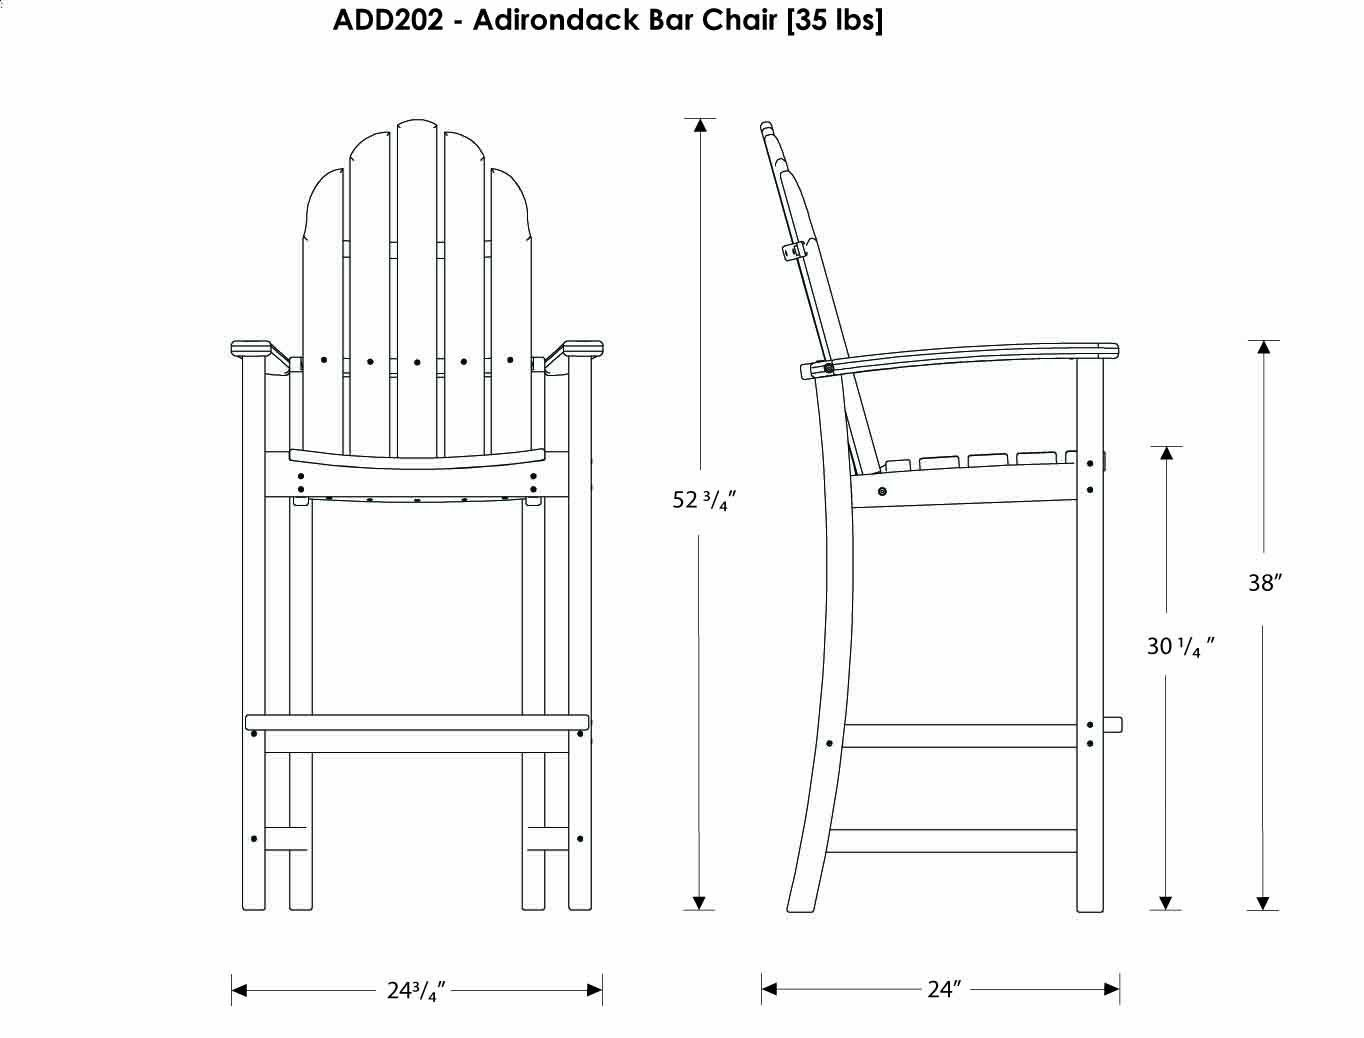 Adirondack Bar Stool Log Furniture Adirondack Chair